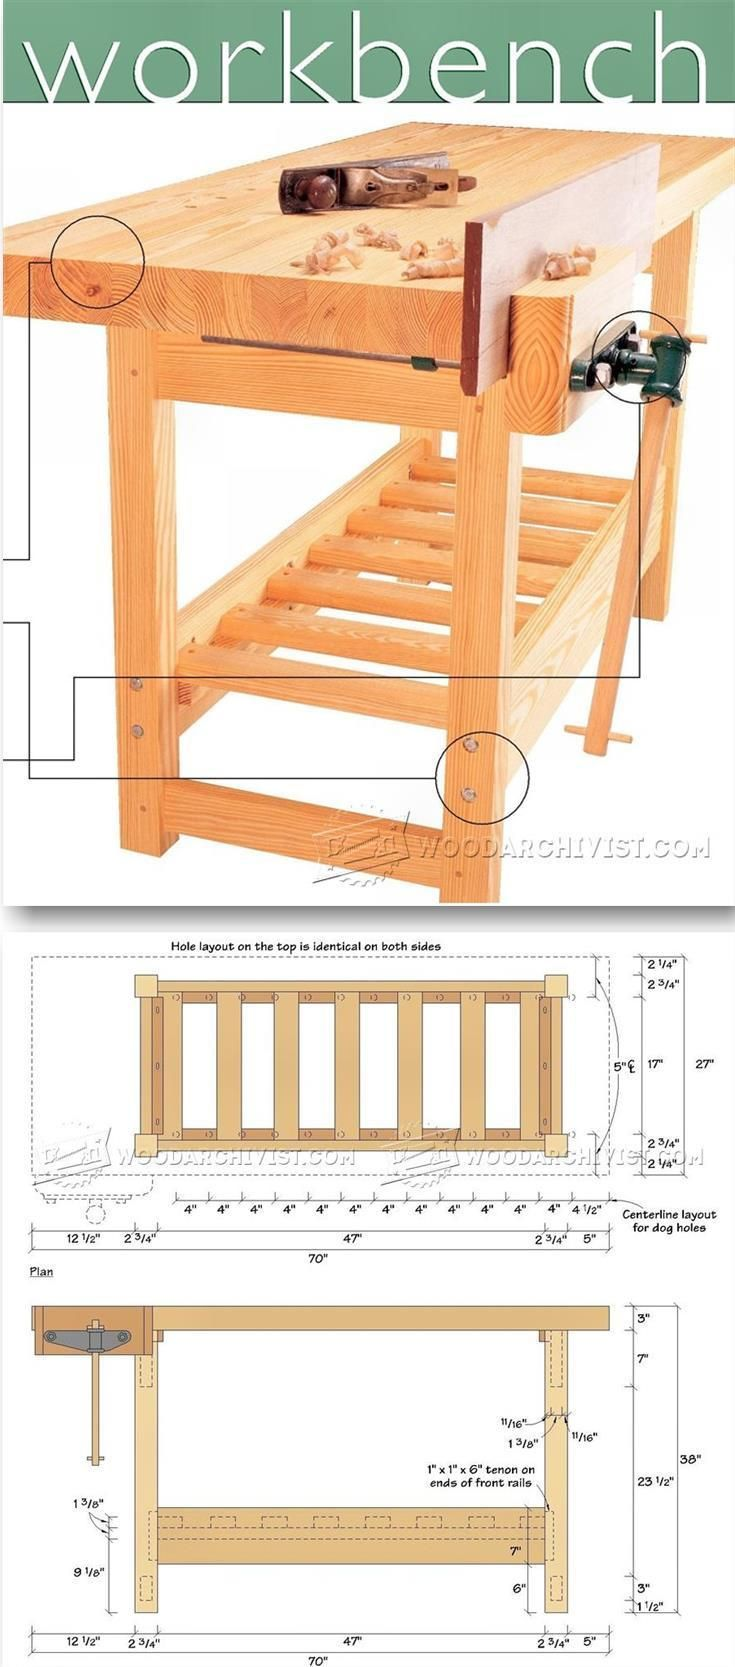 Plan D Etabli Bois wood workbench plan - workshop solutions plans, tips and